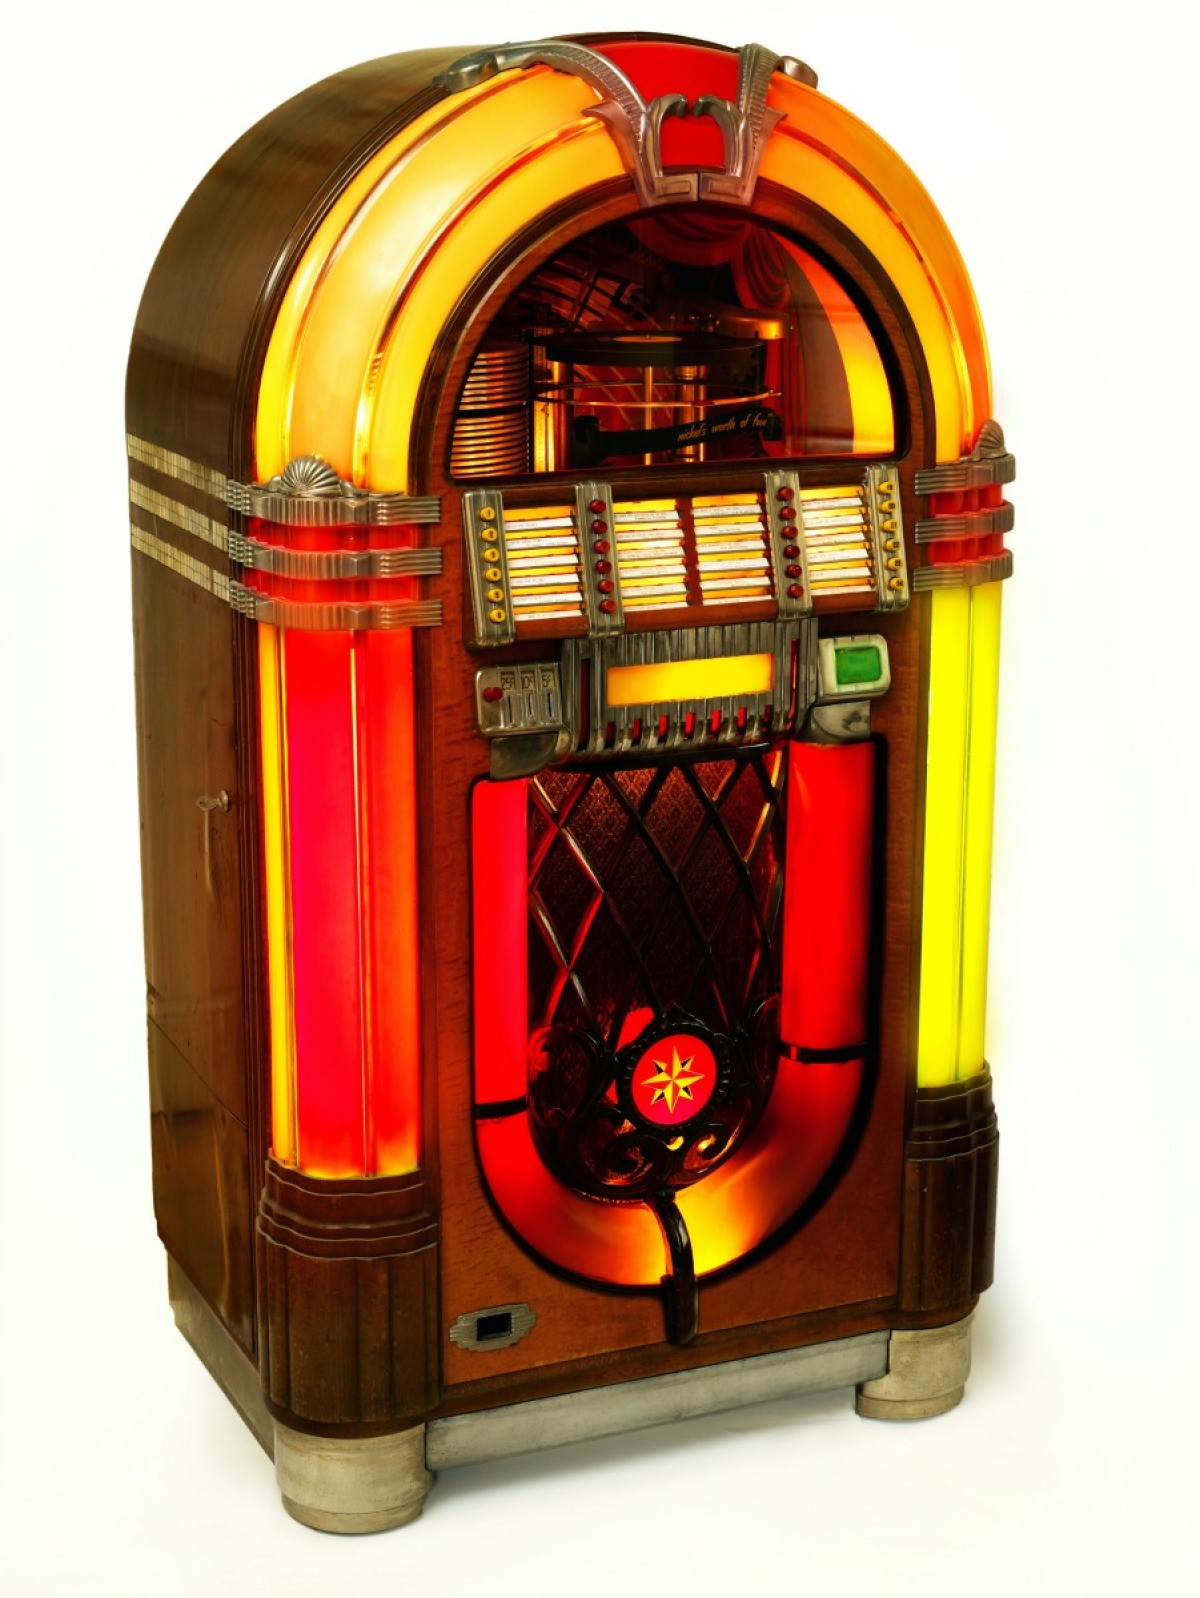 Finding the Value of a Vintage Jukebox | ThriftyFun